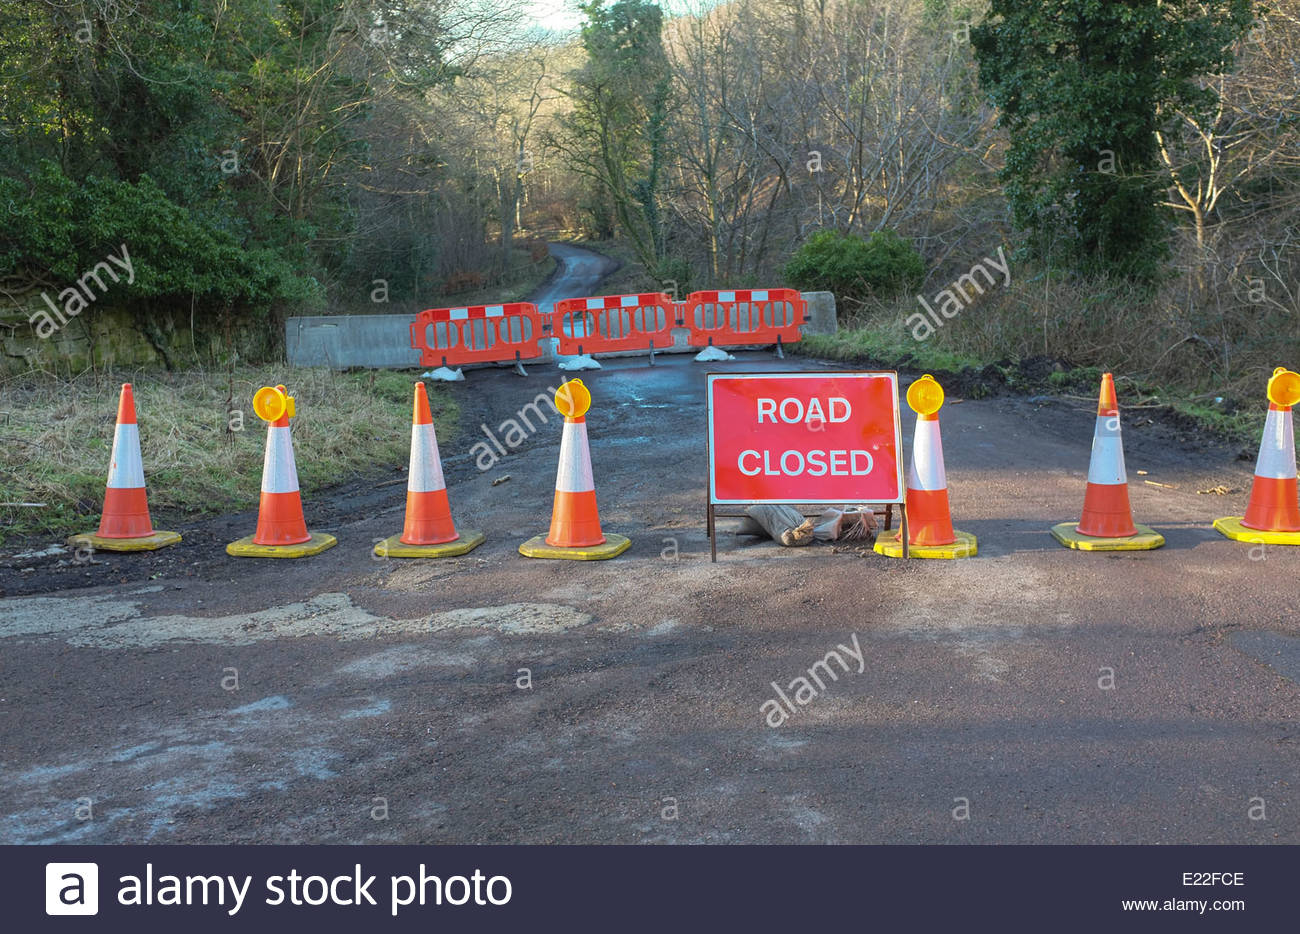 A road closed sign at the top of a bank - Stock Image